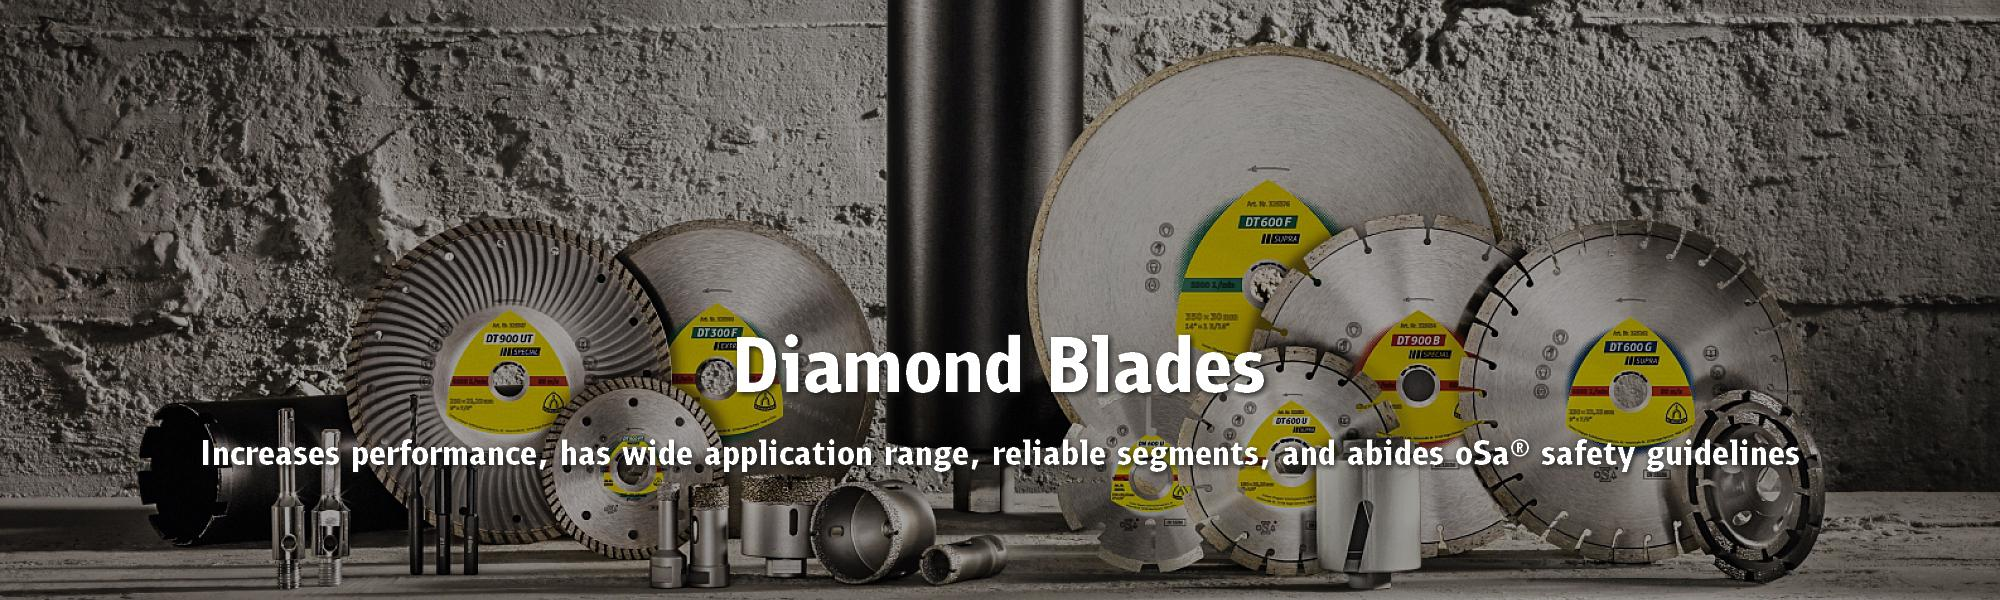 Diamond Blades: Increases performance, has wide application range, reliable segments, and abides oSa® safety guidelines